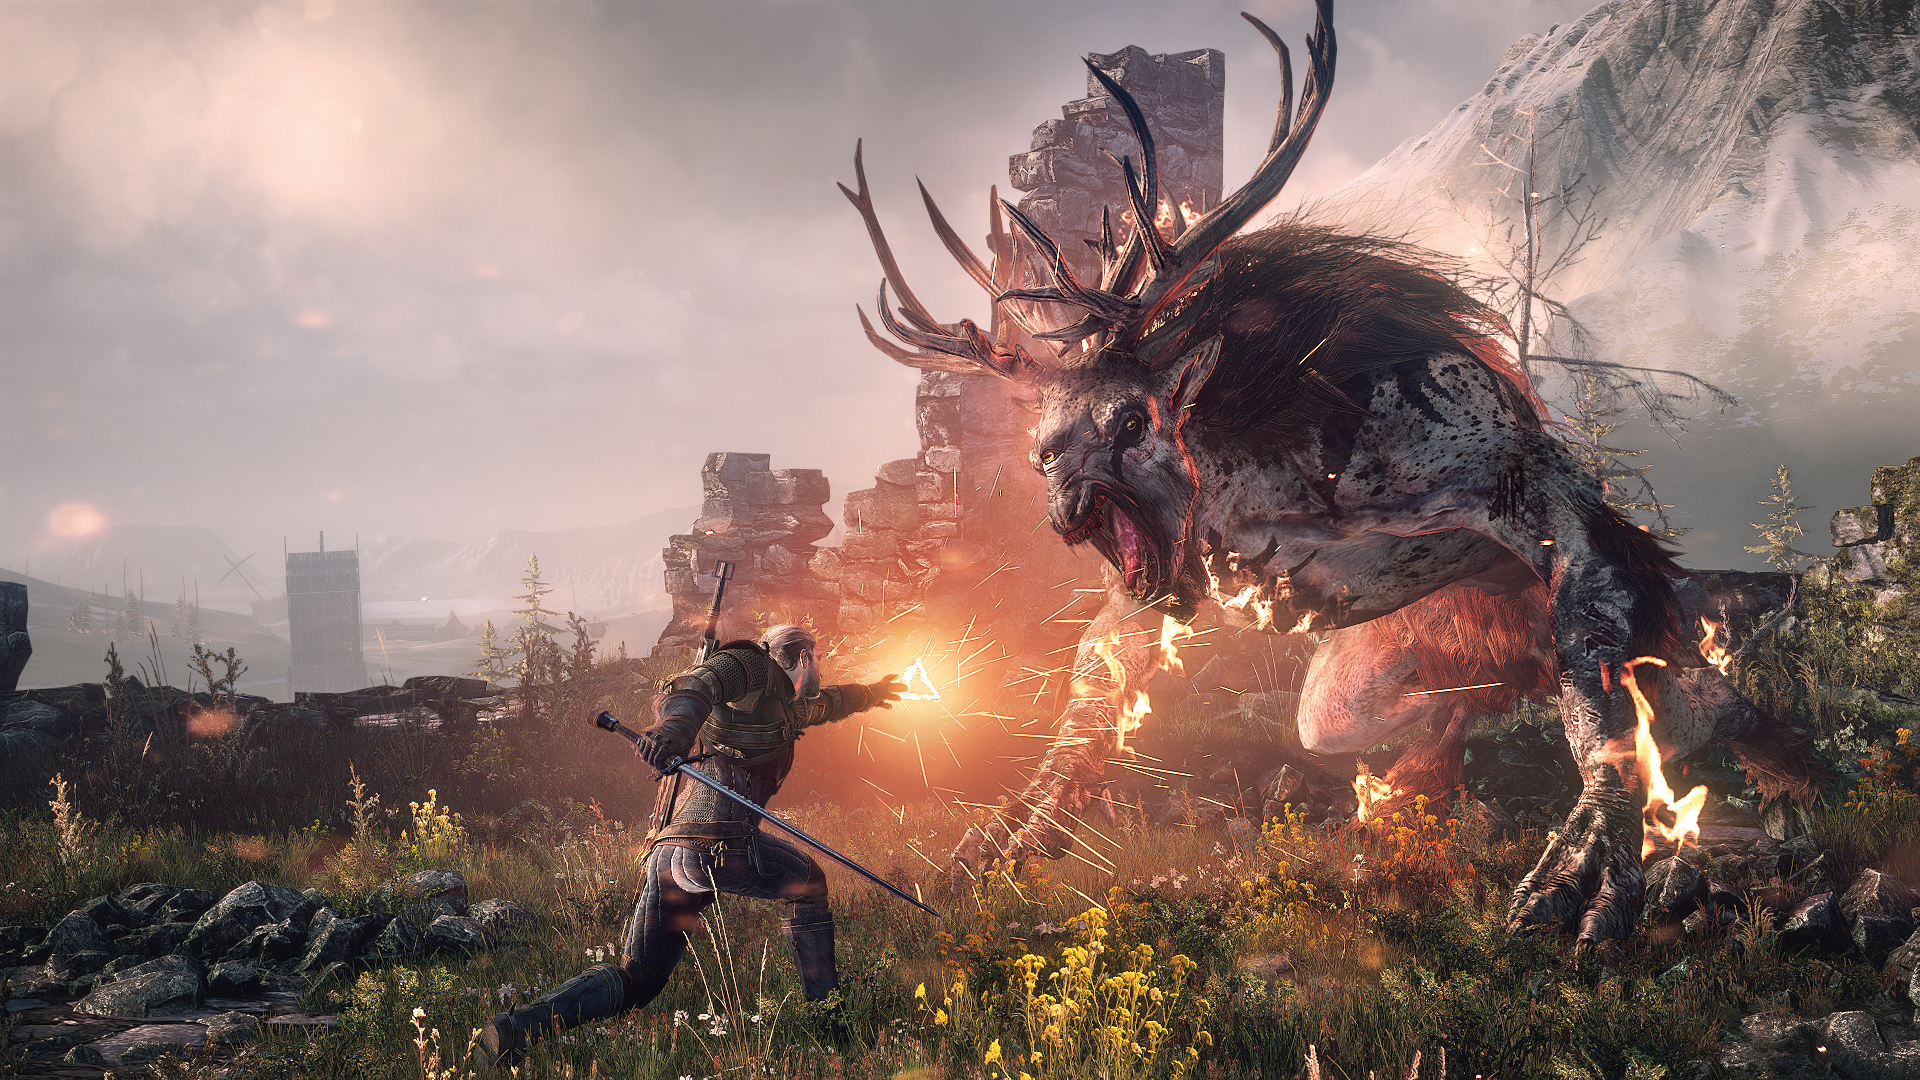 Witcher 3: Wild Hunt, έρχεται με 2 expansions